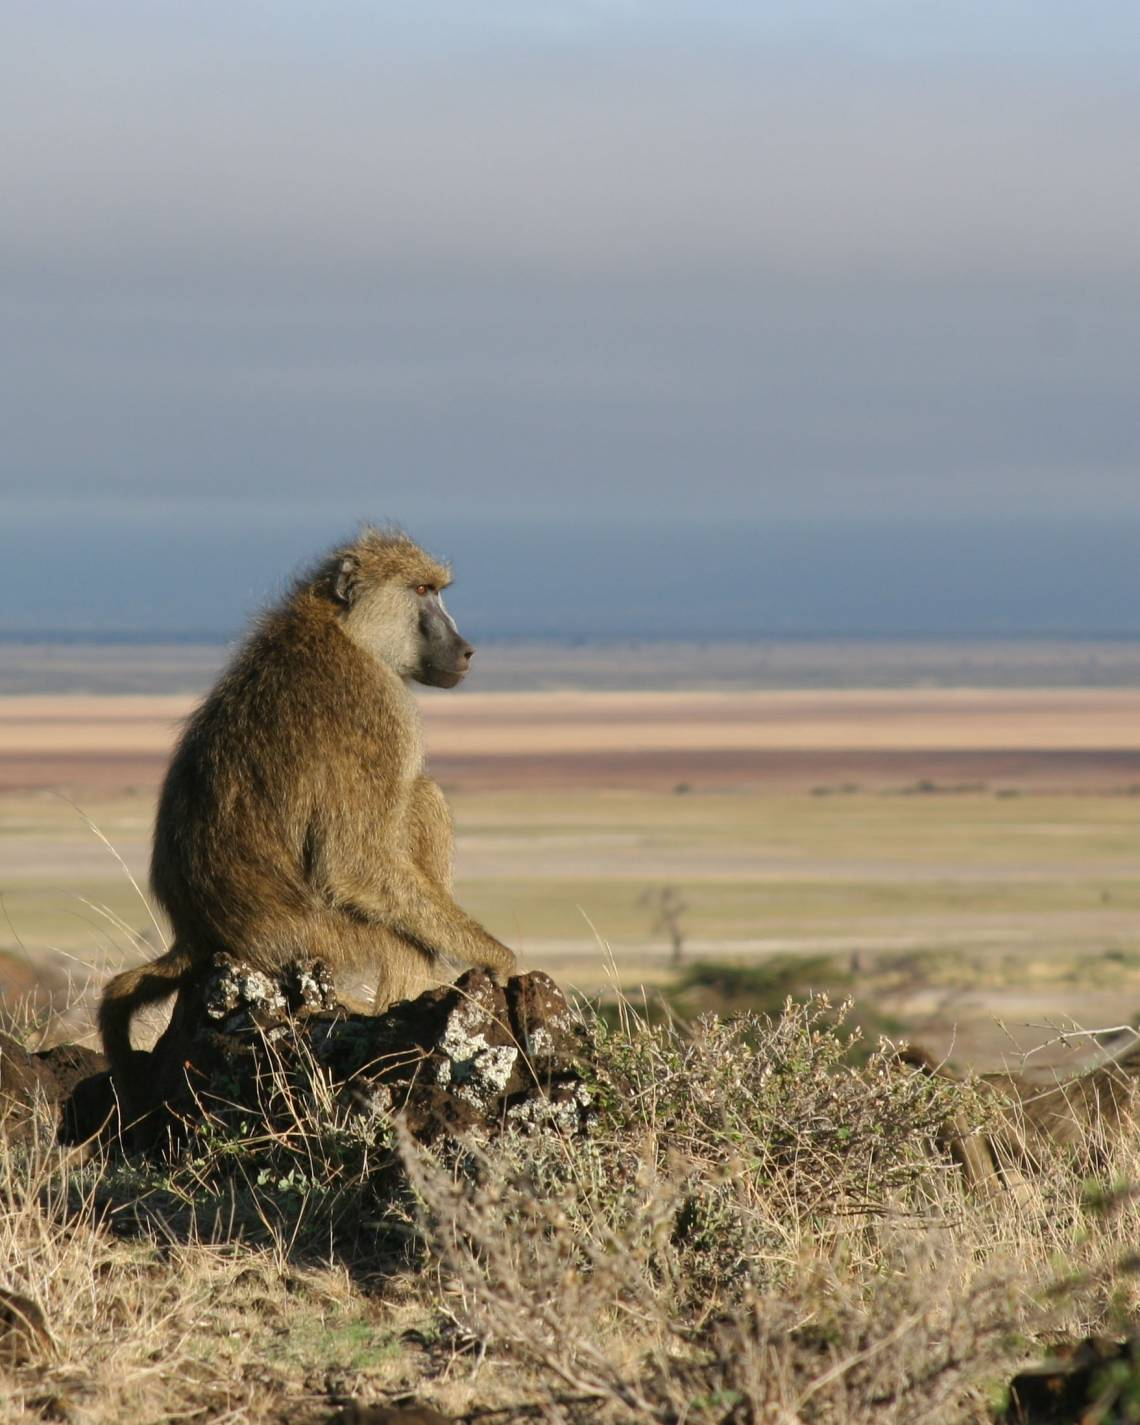 Some baboon males are prone to commit domestic violence when forced to move into a group with few fertile females, researchers find. Photo by Catherine Markham, Stony Brook University.